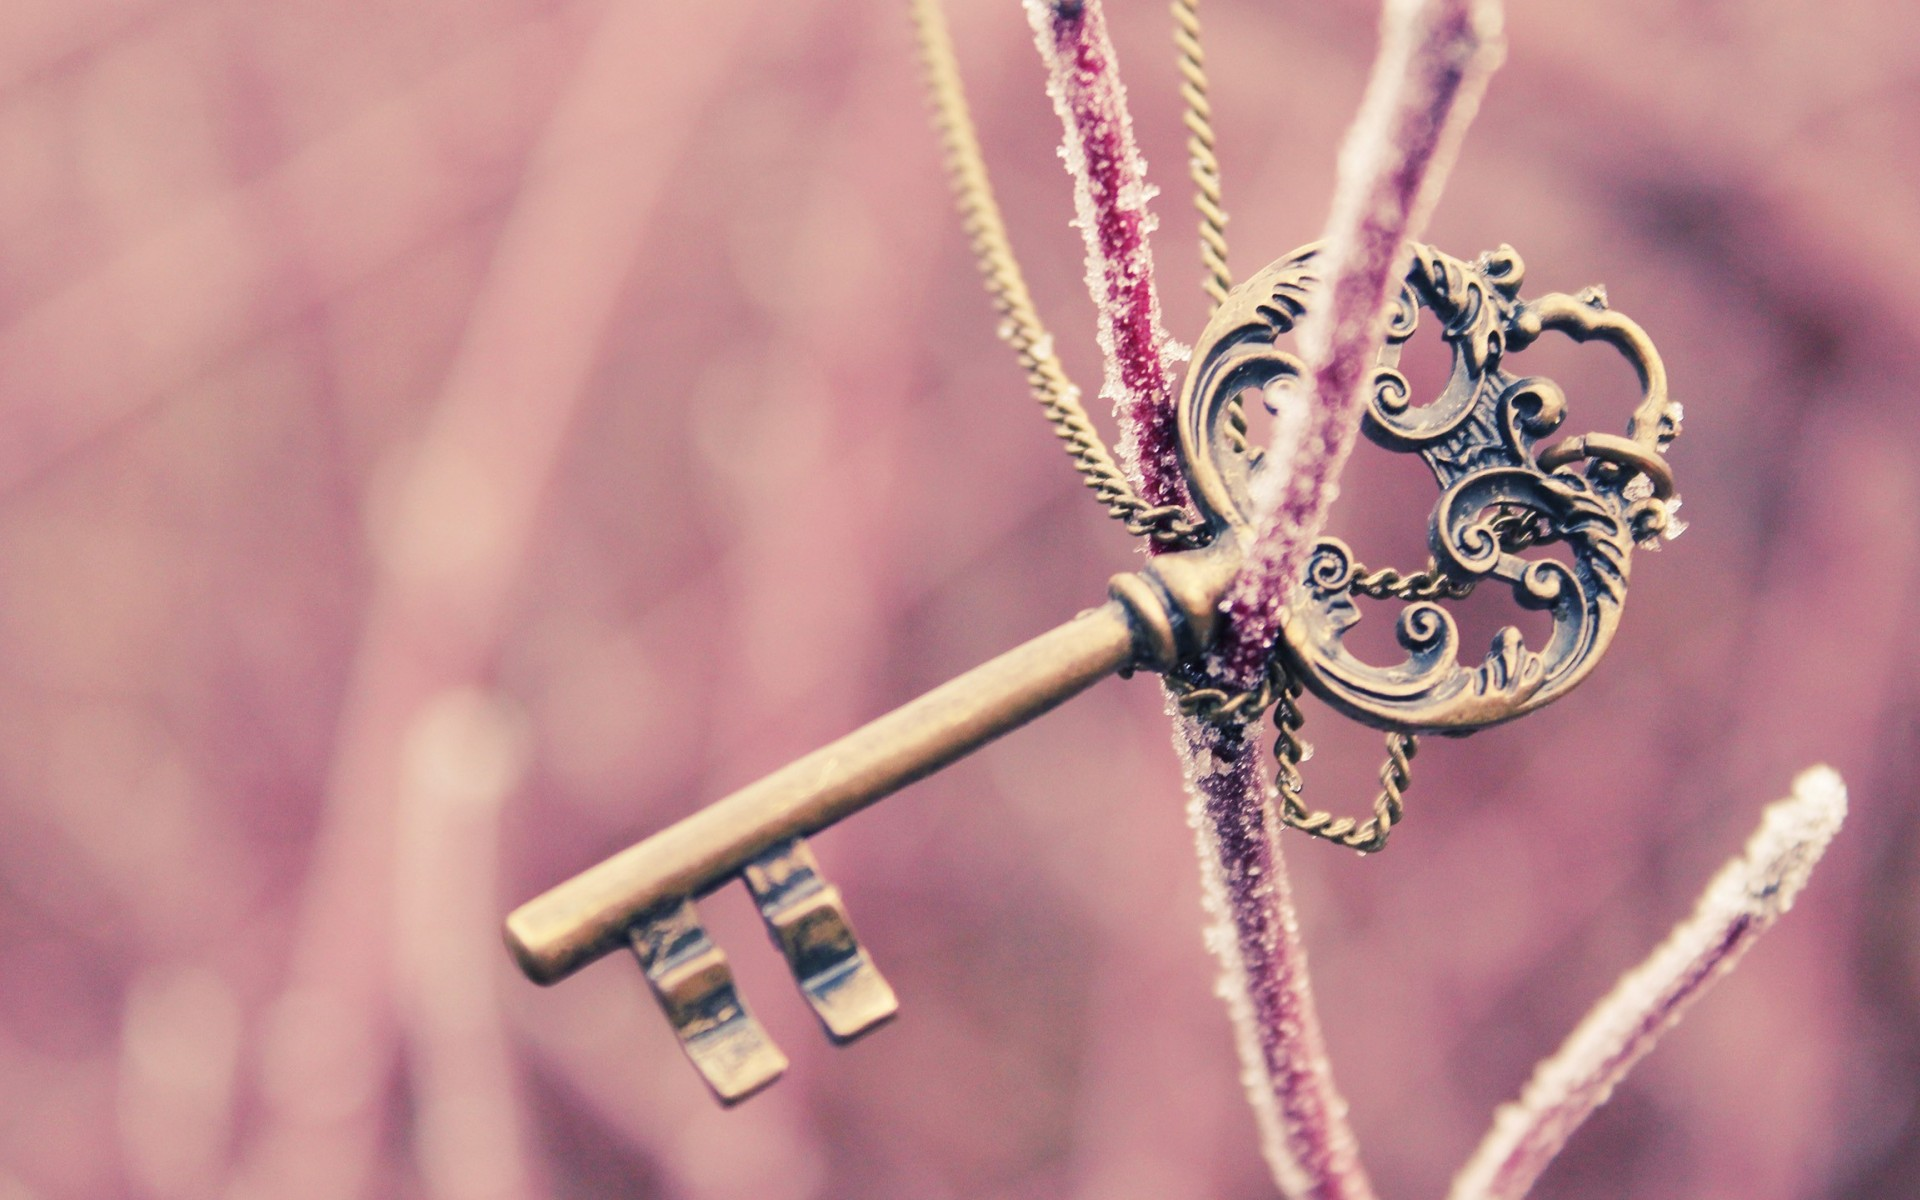 Love Key Hd Wallpaper : Mood key pink bokeh frost chain chains macro wallpaper 1920x1200 84818 WallpaperUP